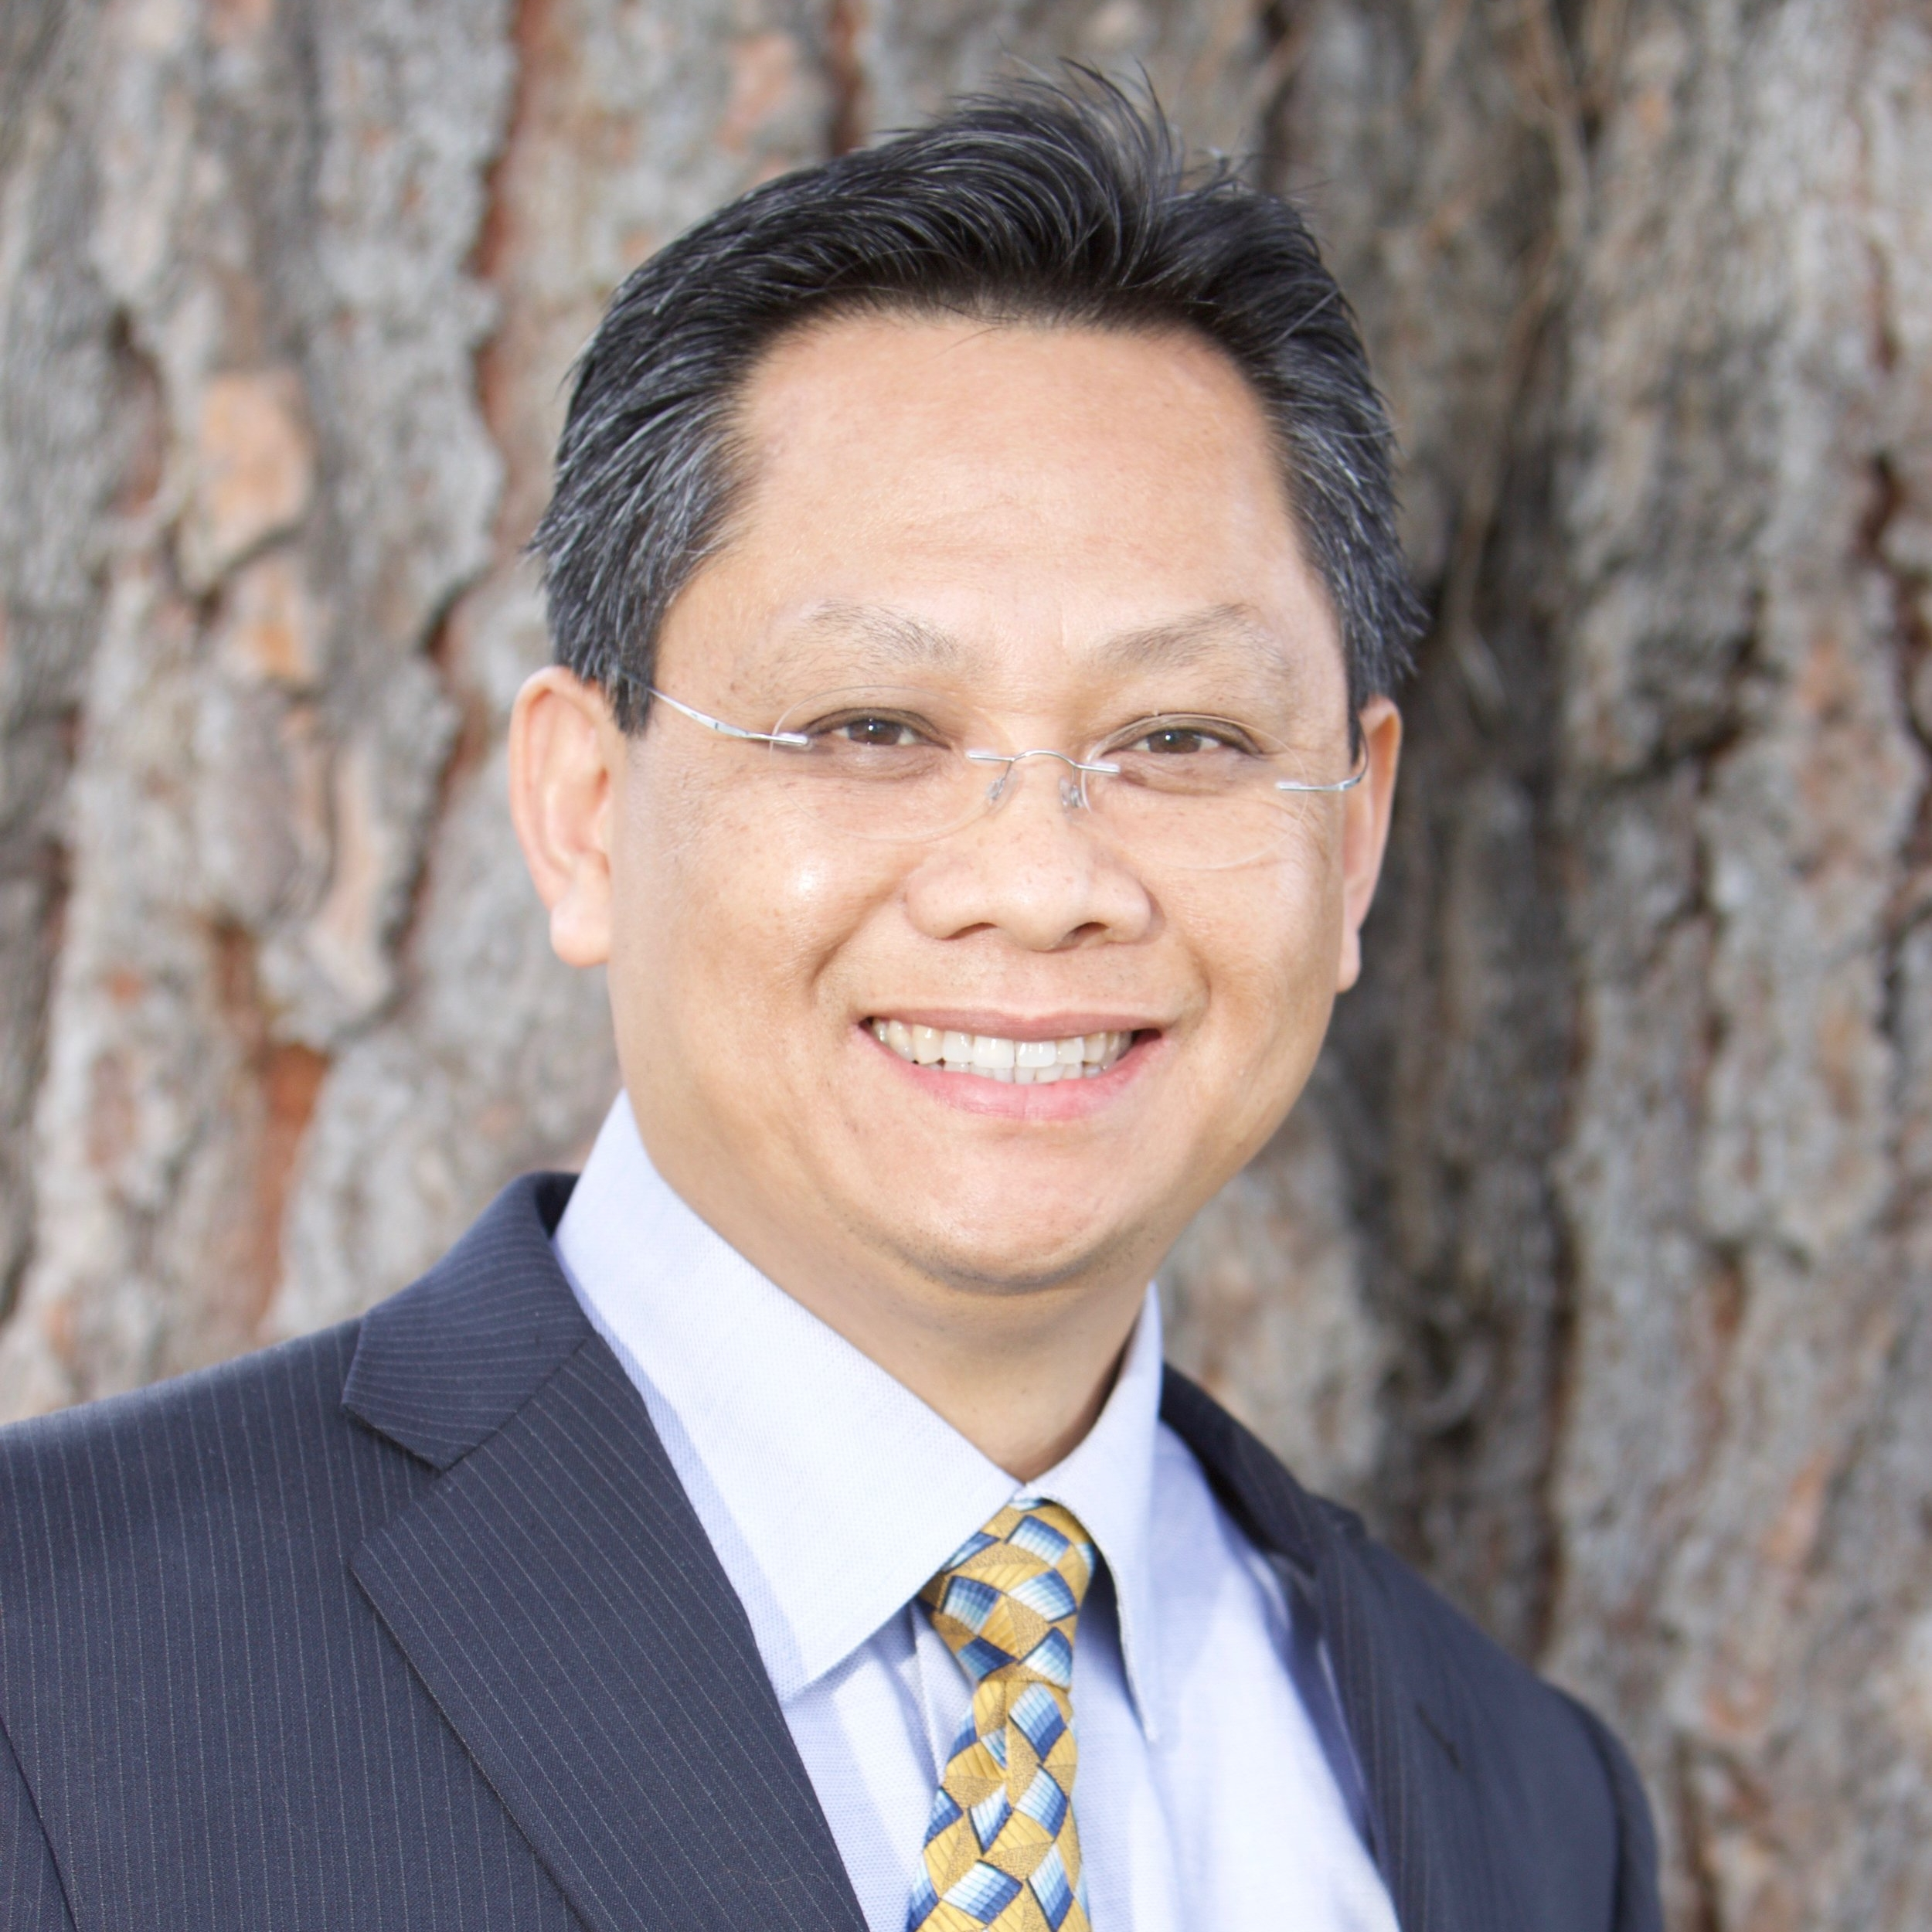 Vincent Nguyen, DO, CMDProvidence St. Joseph Health - Dr. Nguyen is the Director of the CARES Program. Providence St Joseph Health has been a member of the Supportive Care Coalition through legacy Providence Health and Services since our founding in 1994.